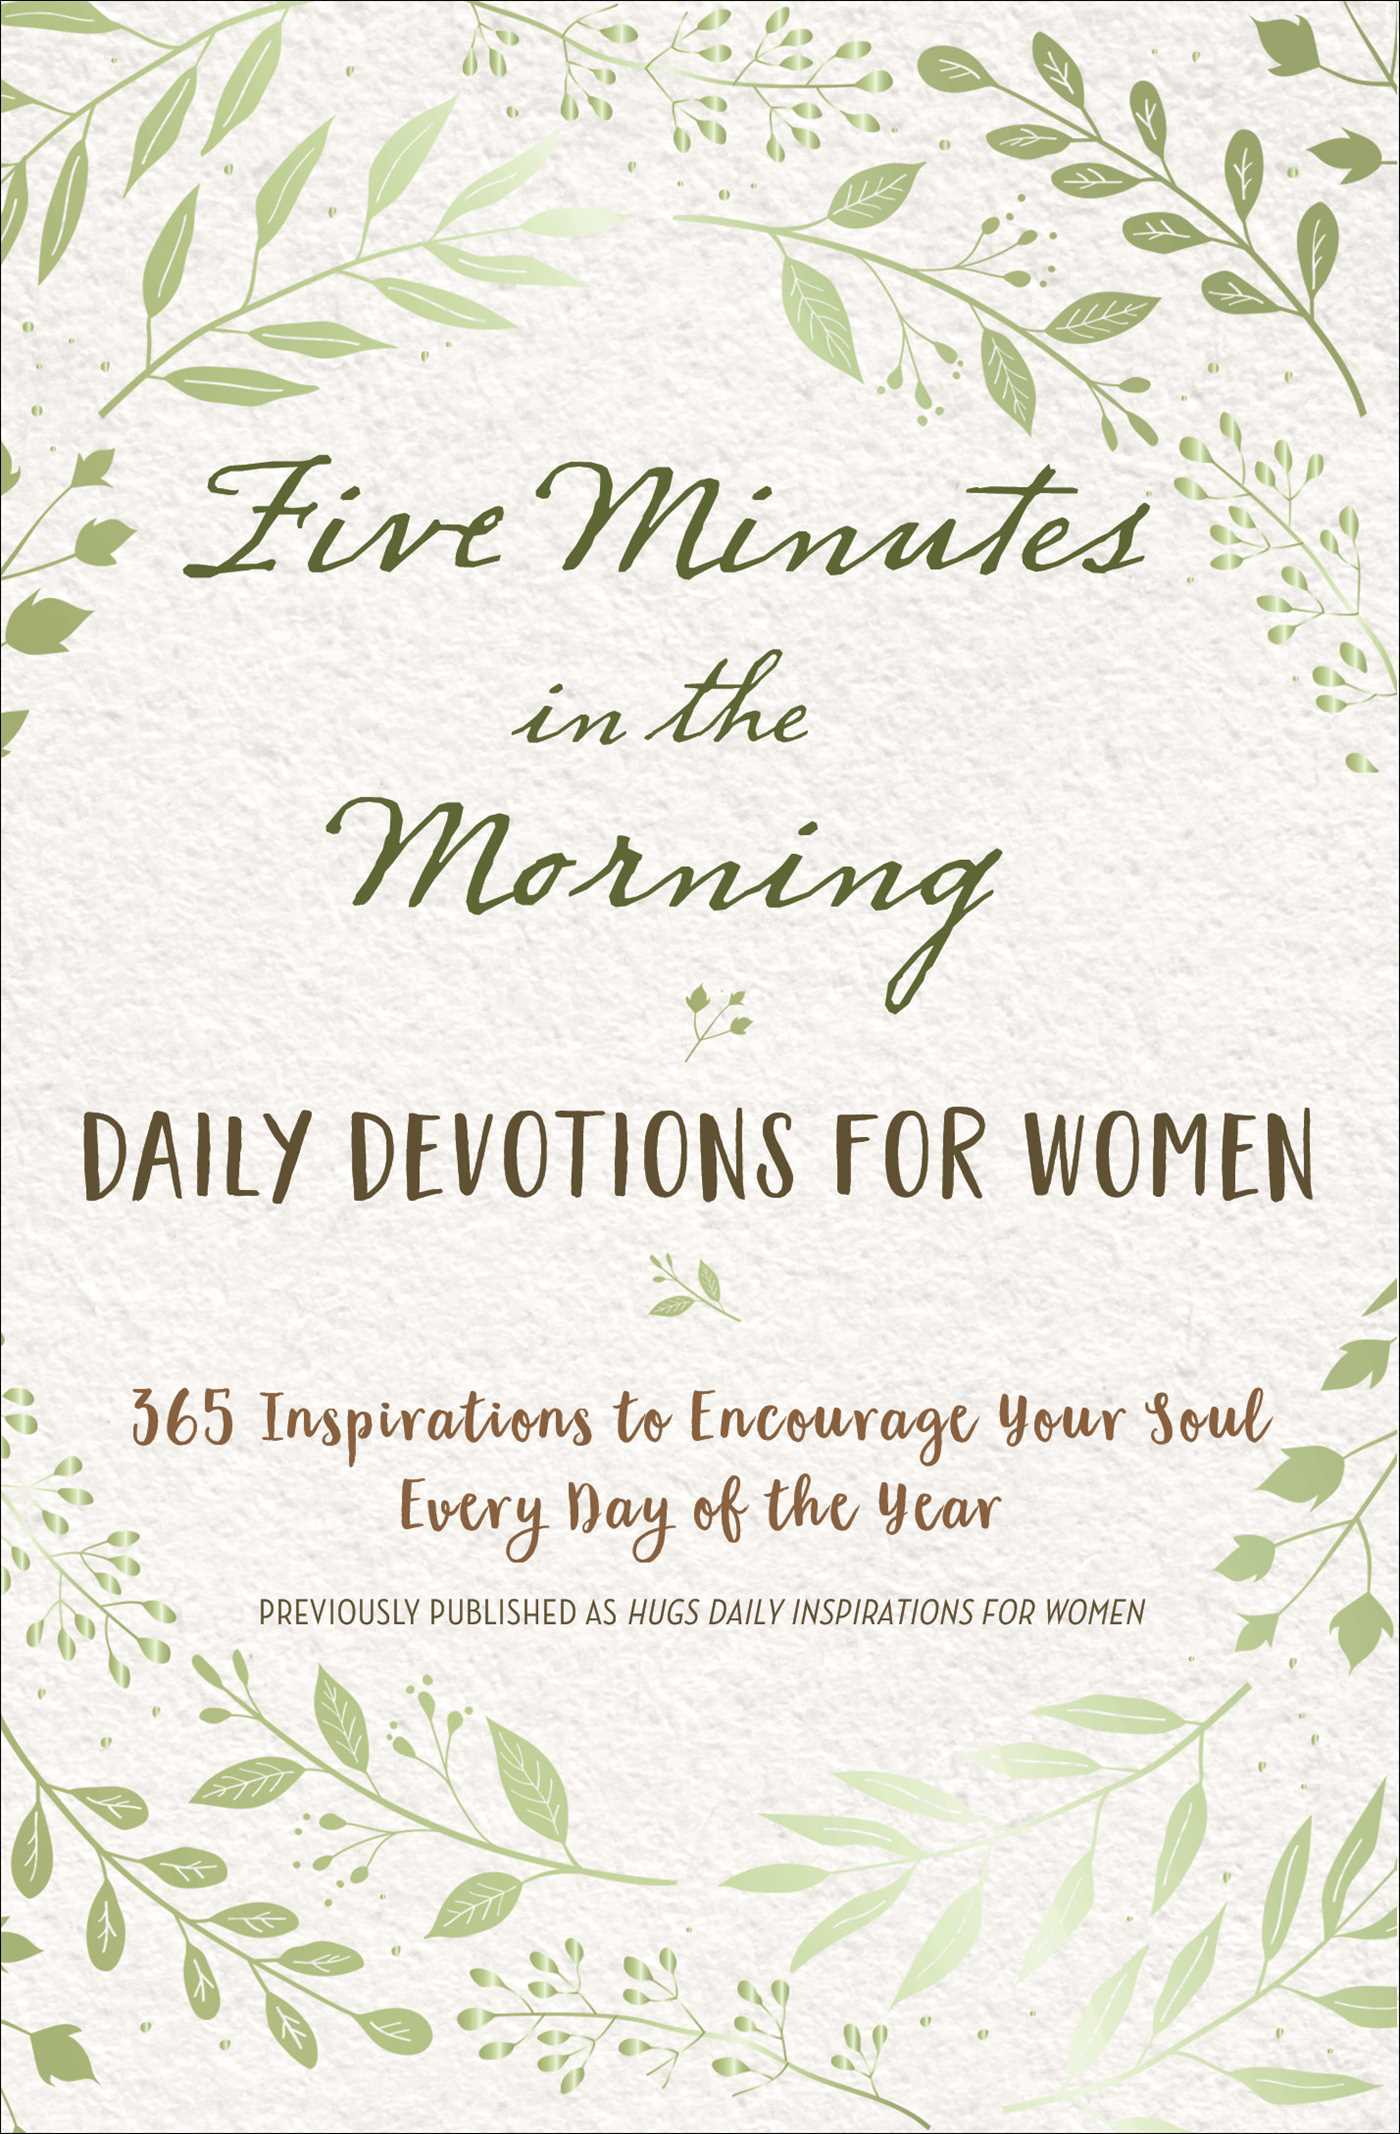 Five Minutes in the Morning Daily Devotions for Women